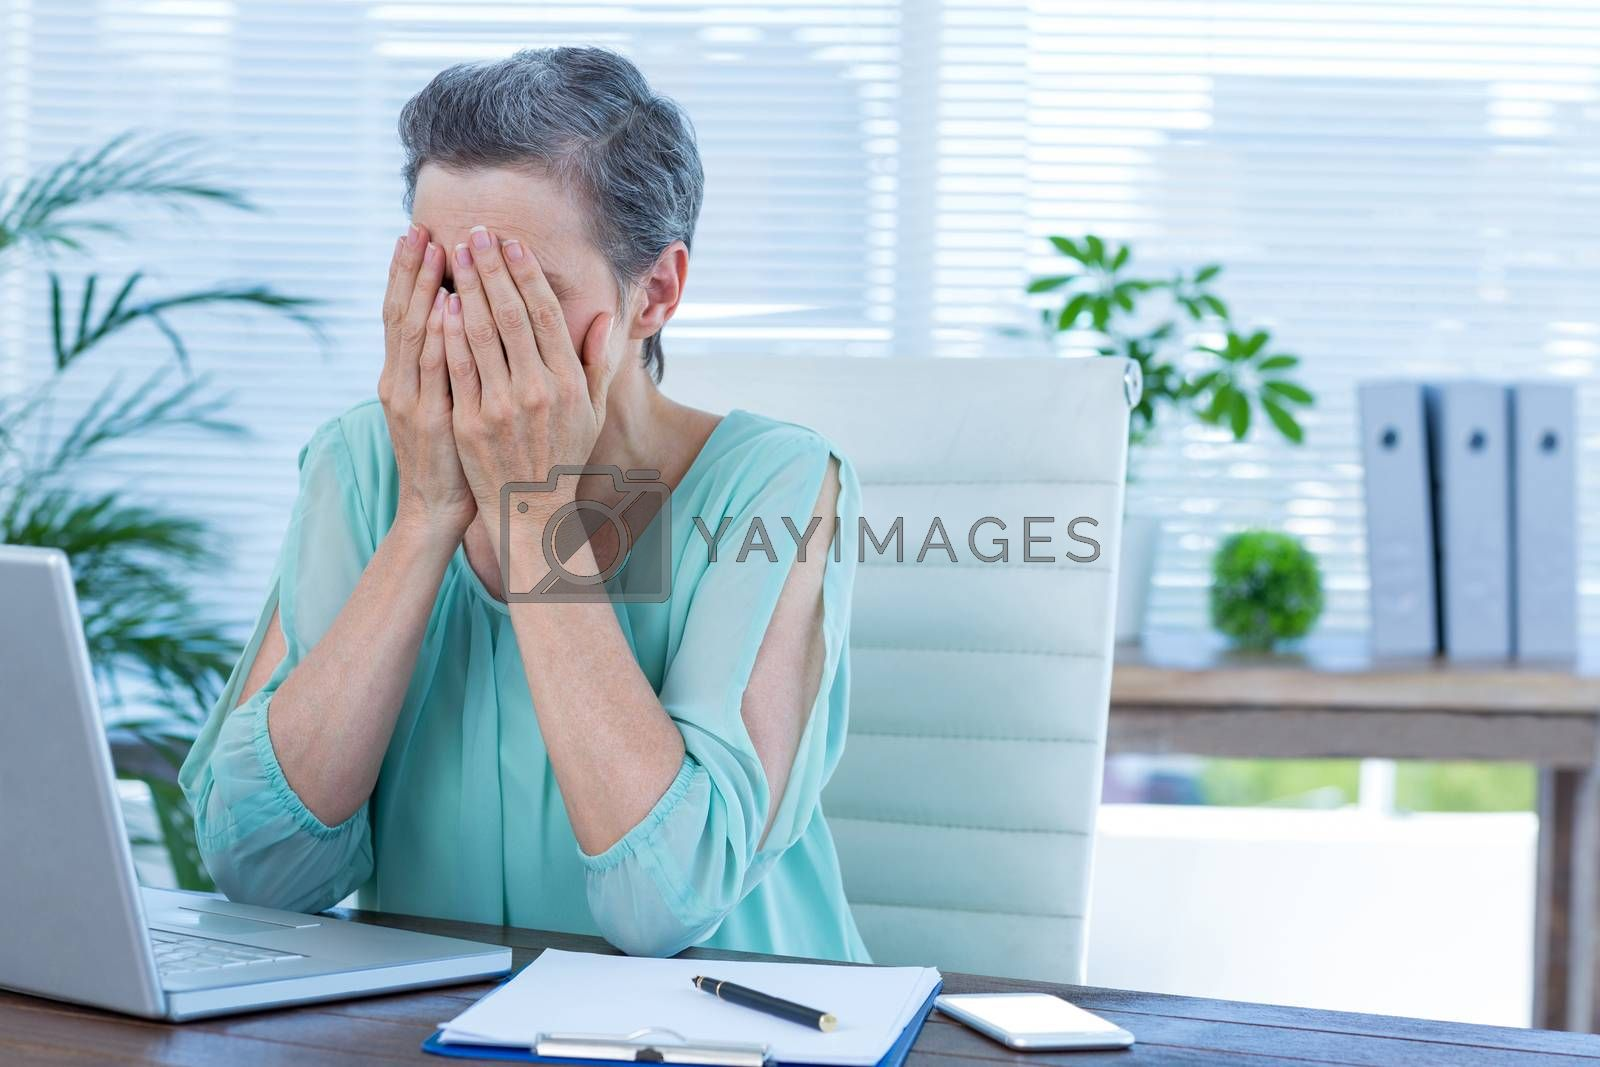 Royalty free image of Anxious businesswoman with head in hands by Wavebreakmedia